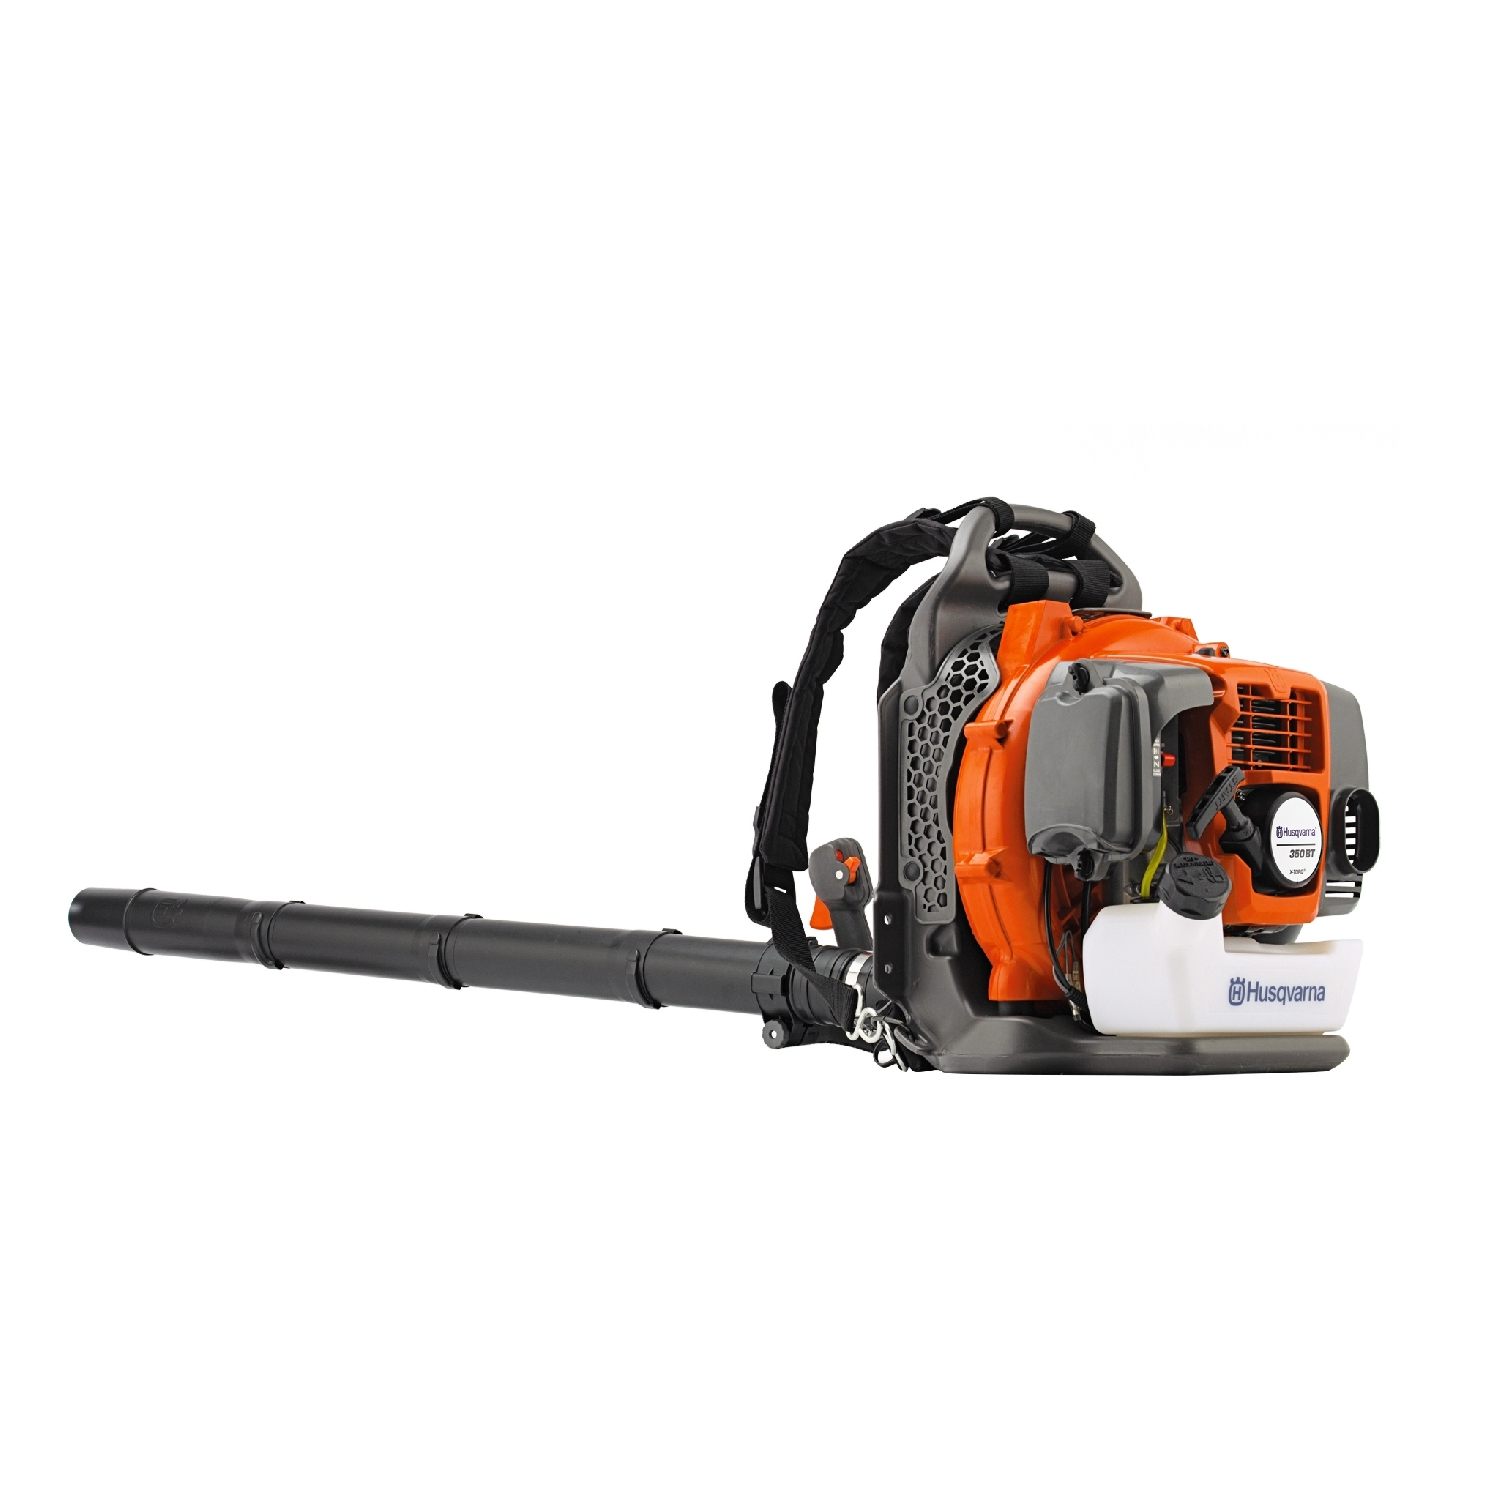 Air Blower gasoline Husqvarna 350 BT (Power 1600 W, benz. engine 50.2 CC, Regul. Air rate up to 80 m/s) 8bar air compressor head reorder rate up to 80